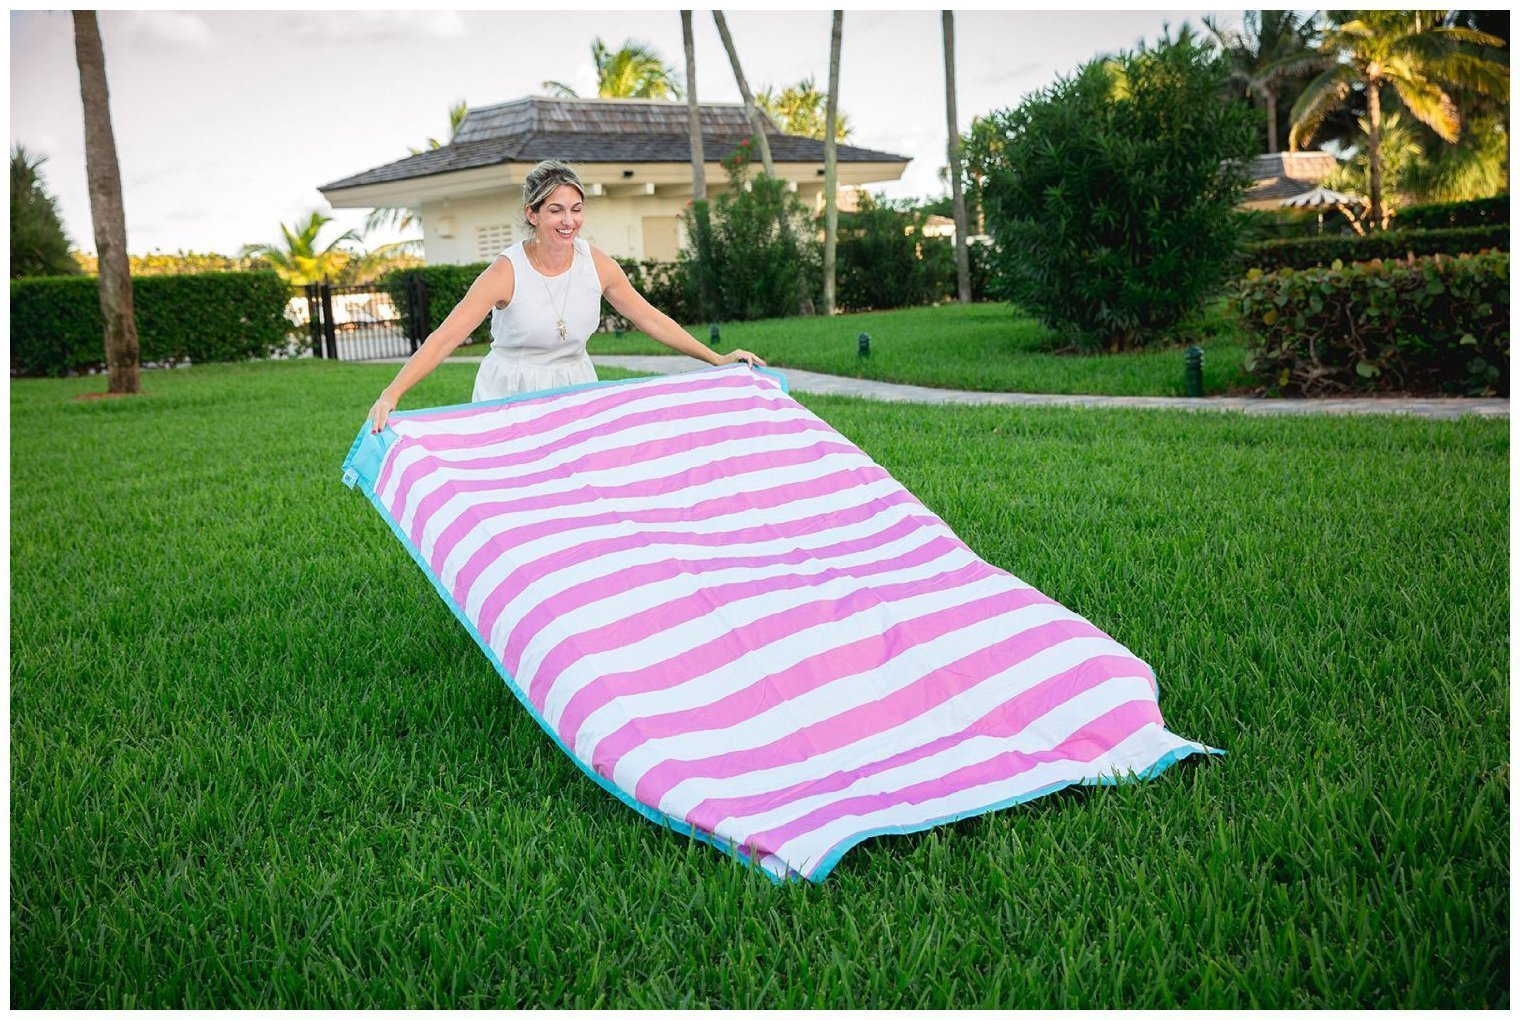 Palm Beach Crew Brilliant Blanket and Wet Bag Collection, Cabana Pink by Palm Beach Crew (Image #1)